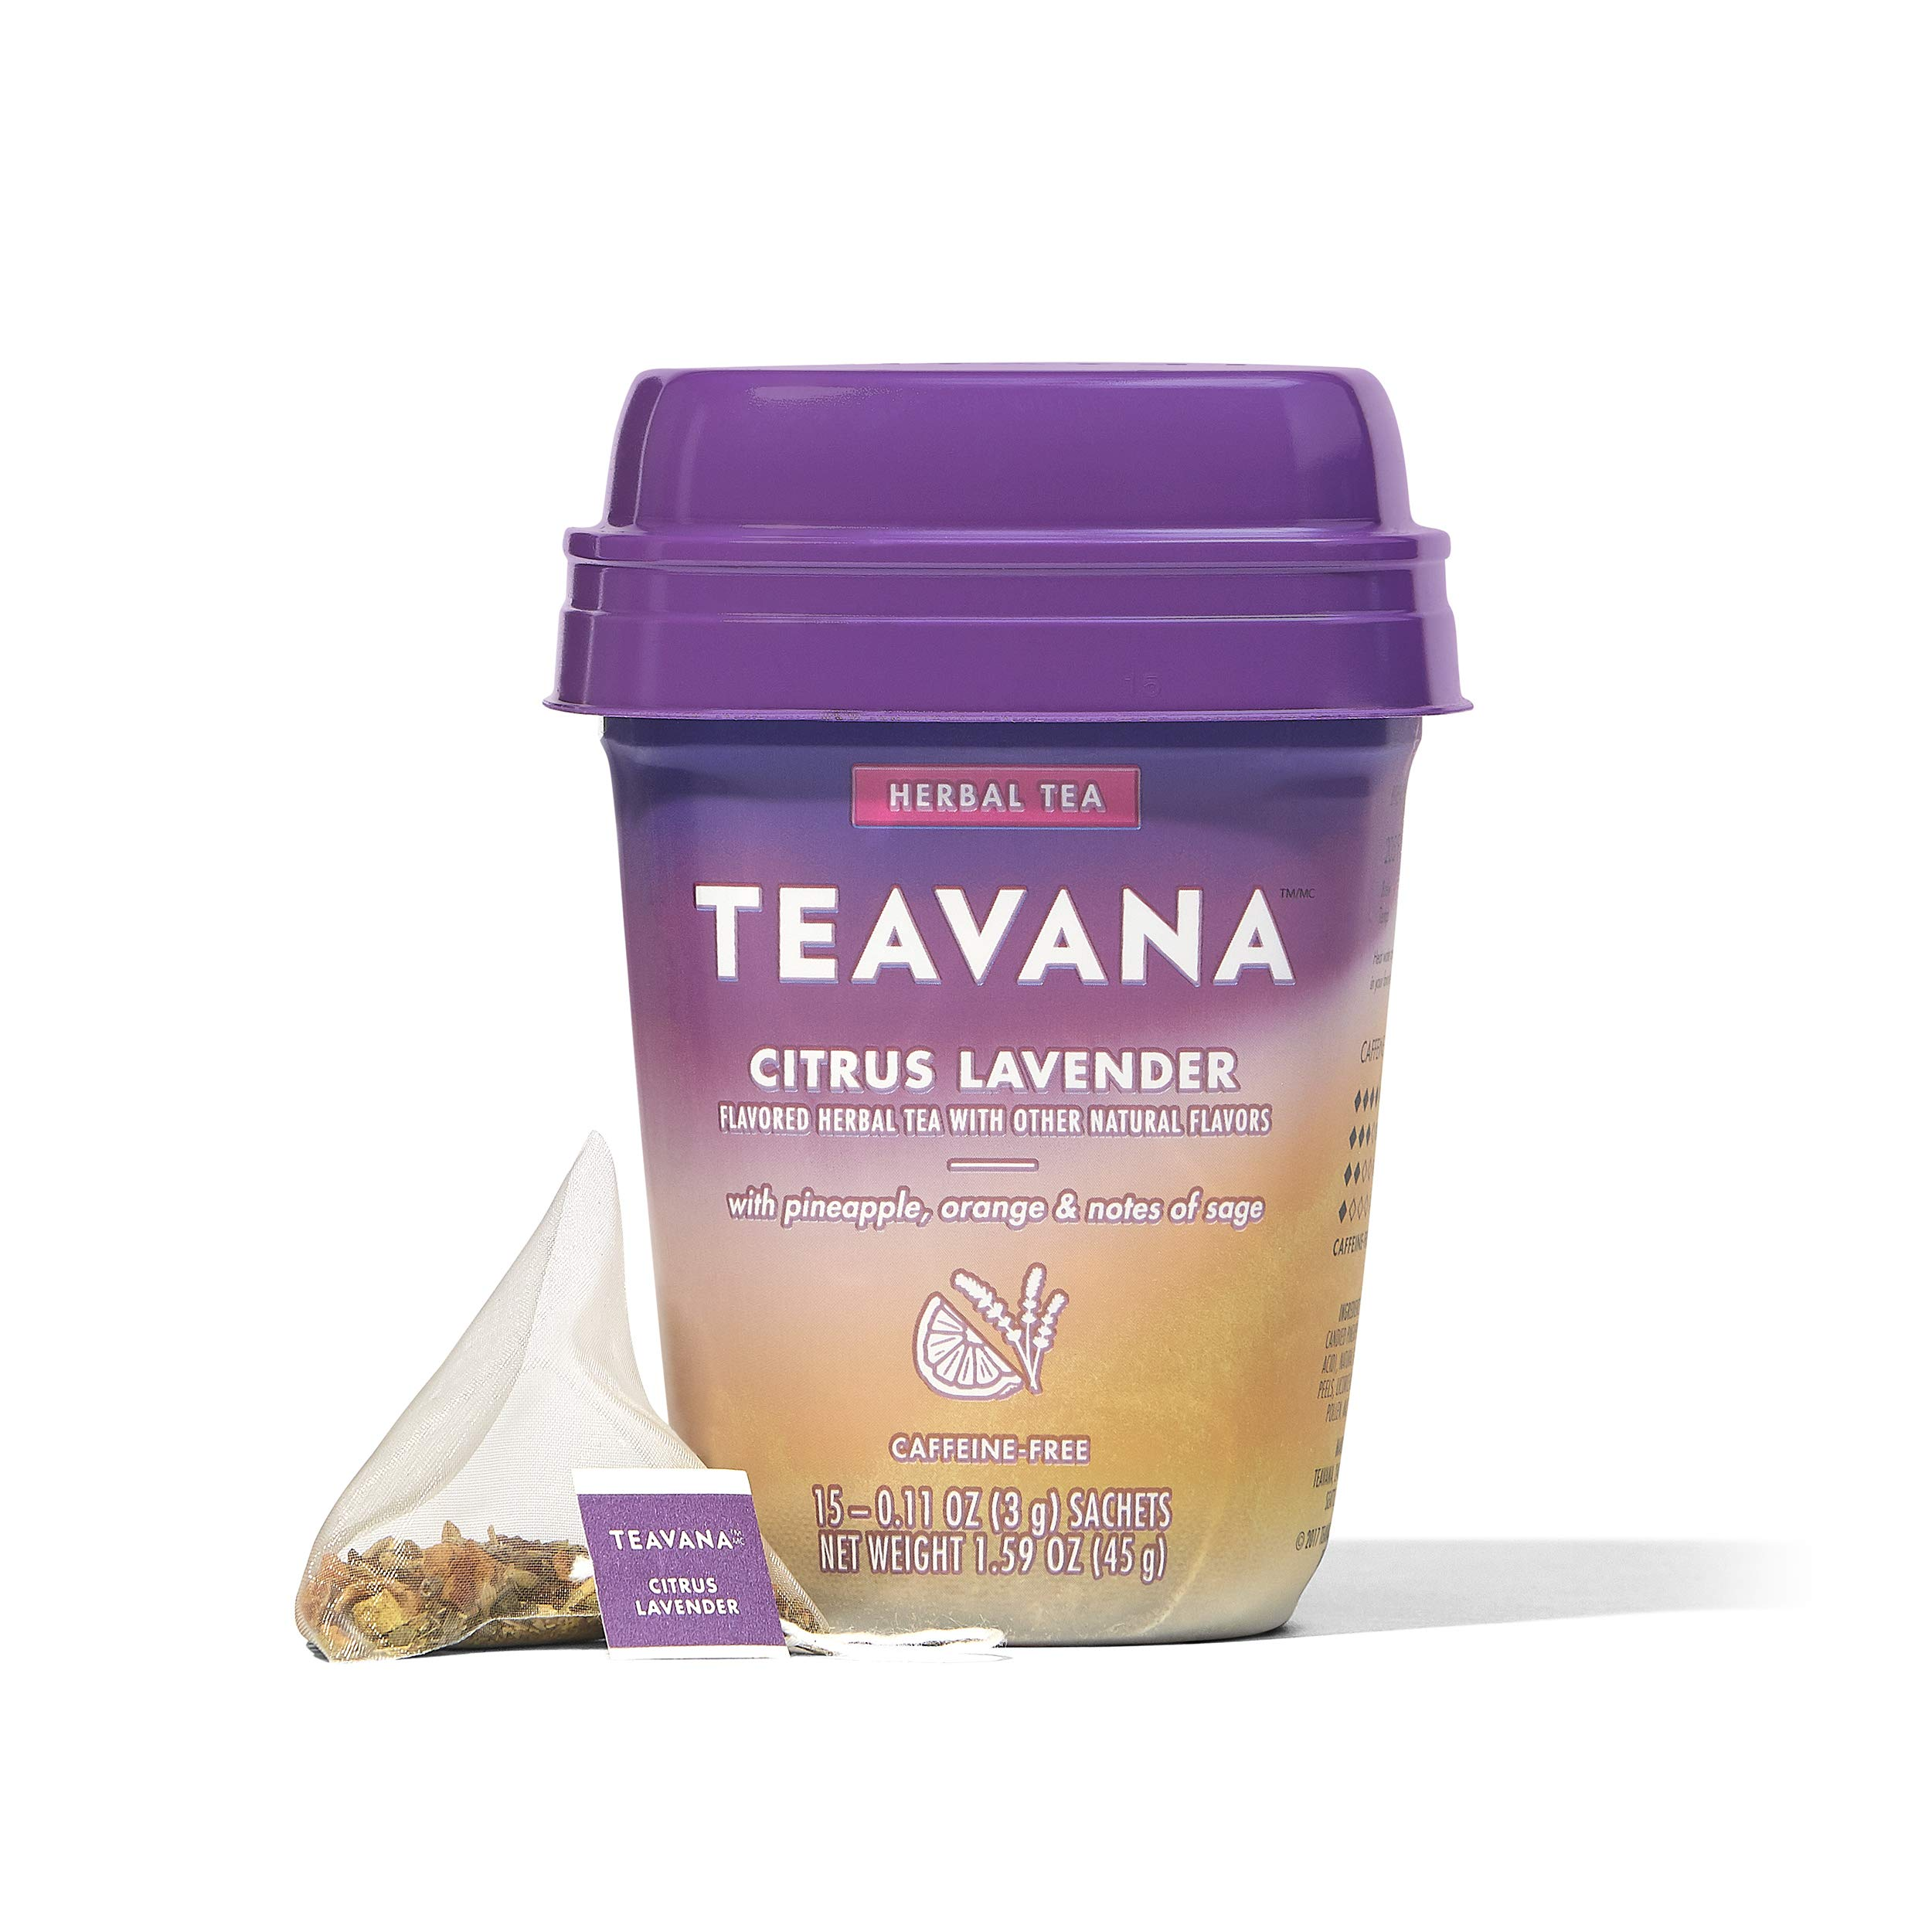 Teavana Citrus Lavender, Herbal Tea With Pineapple, Orange and Notes of Sage, 60 Count (4 packs of 15 sachets)